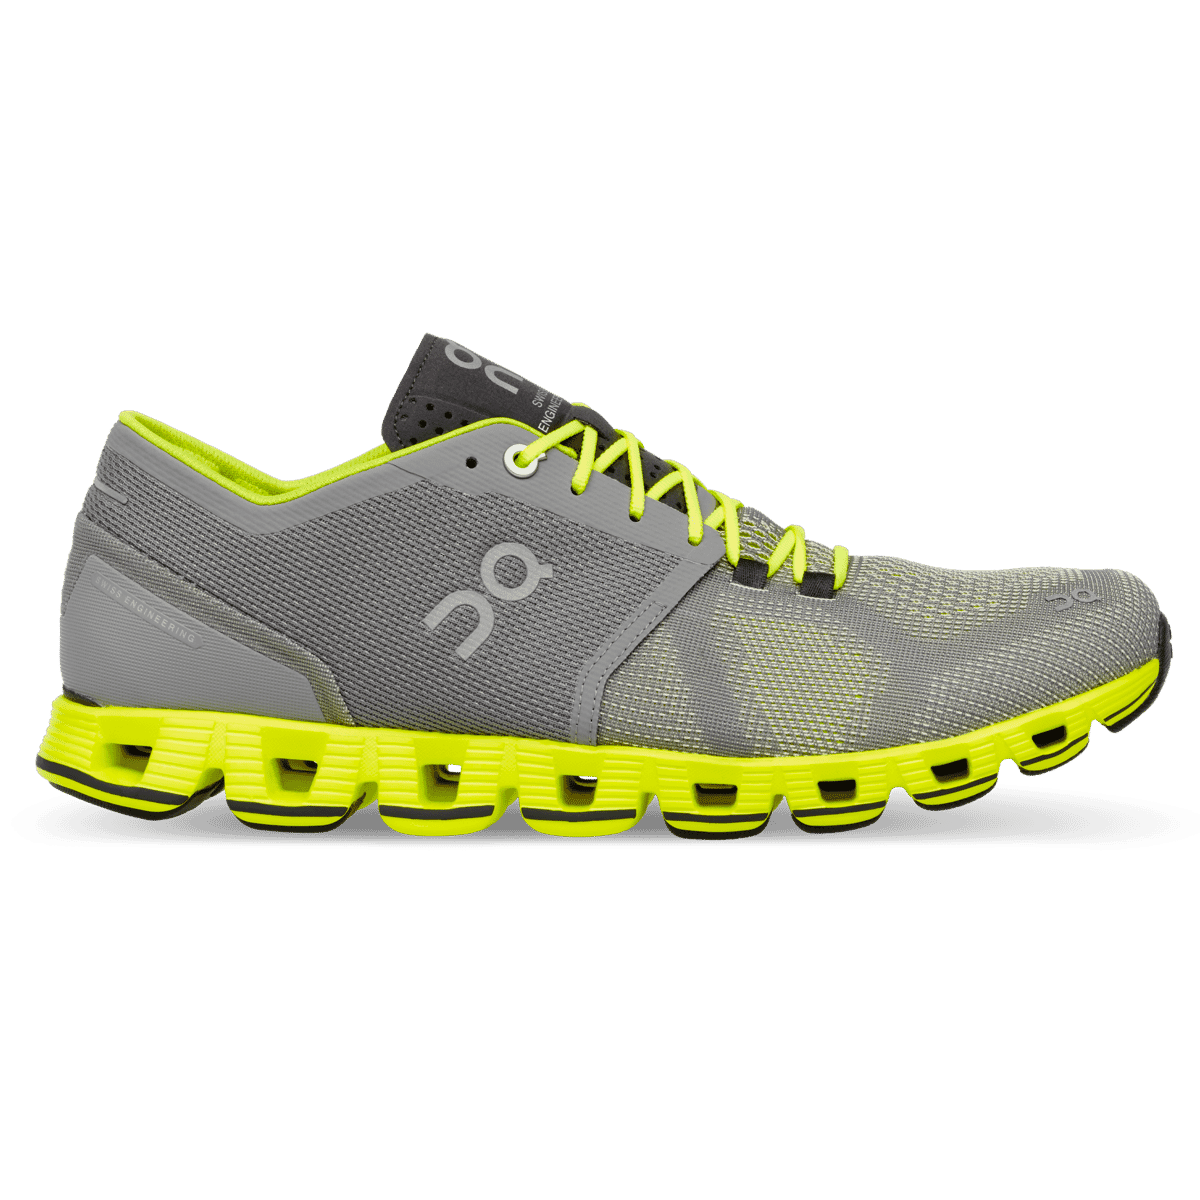 reputable site 54798 92c67 Cloud X - Workout & Training Shoe | On